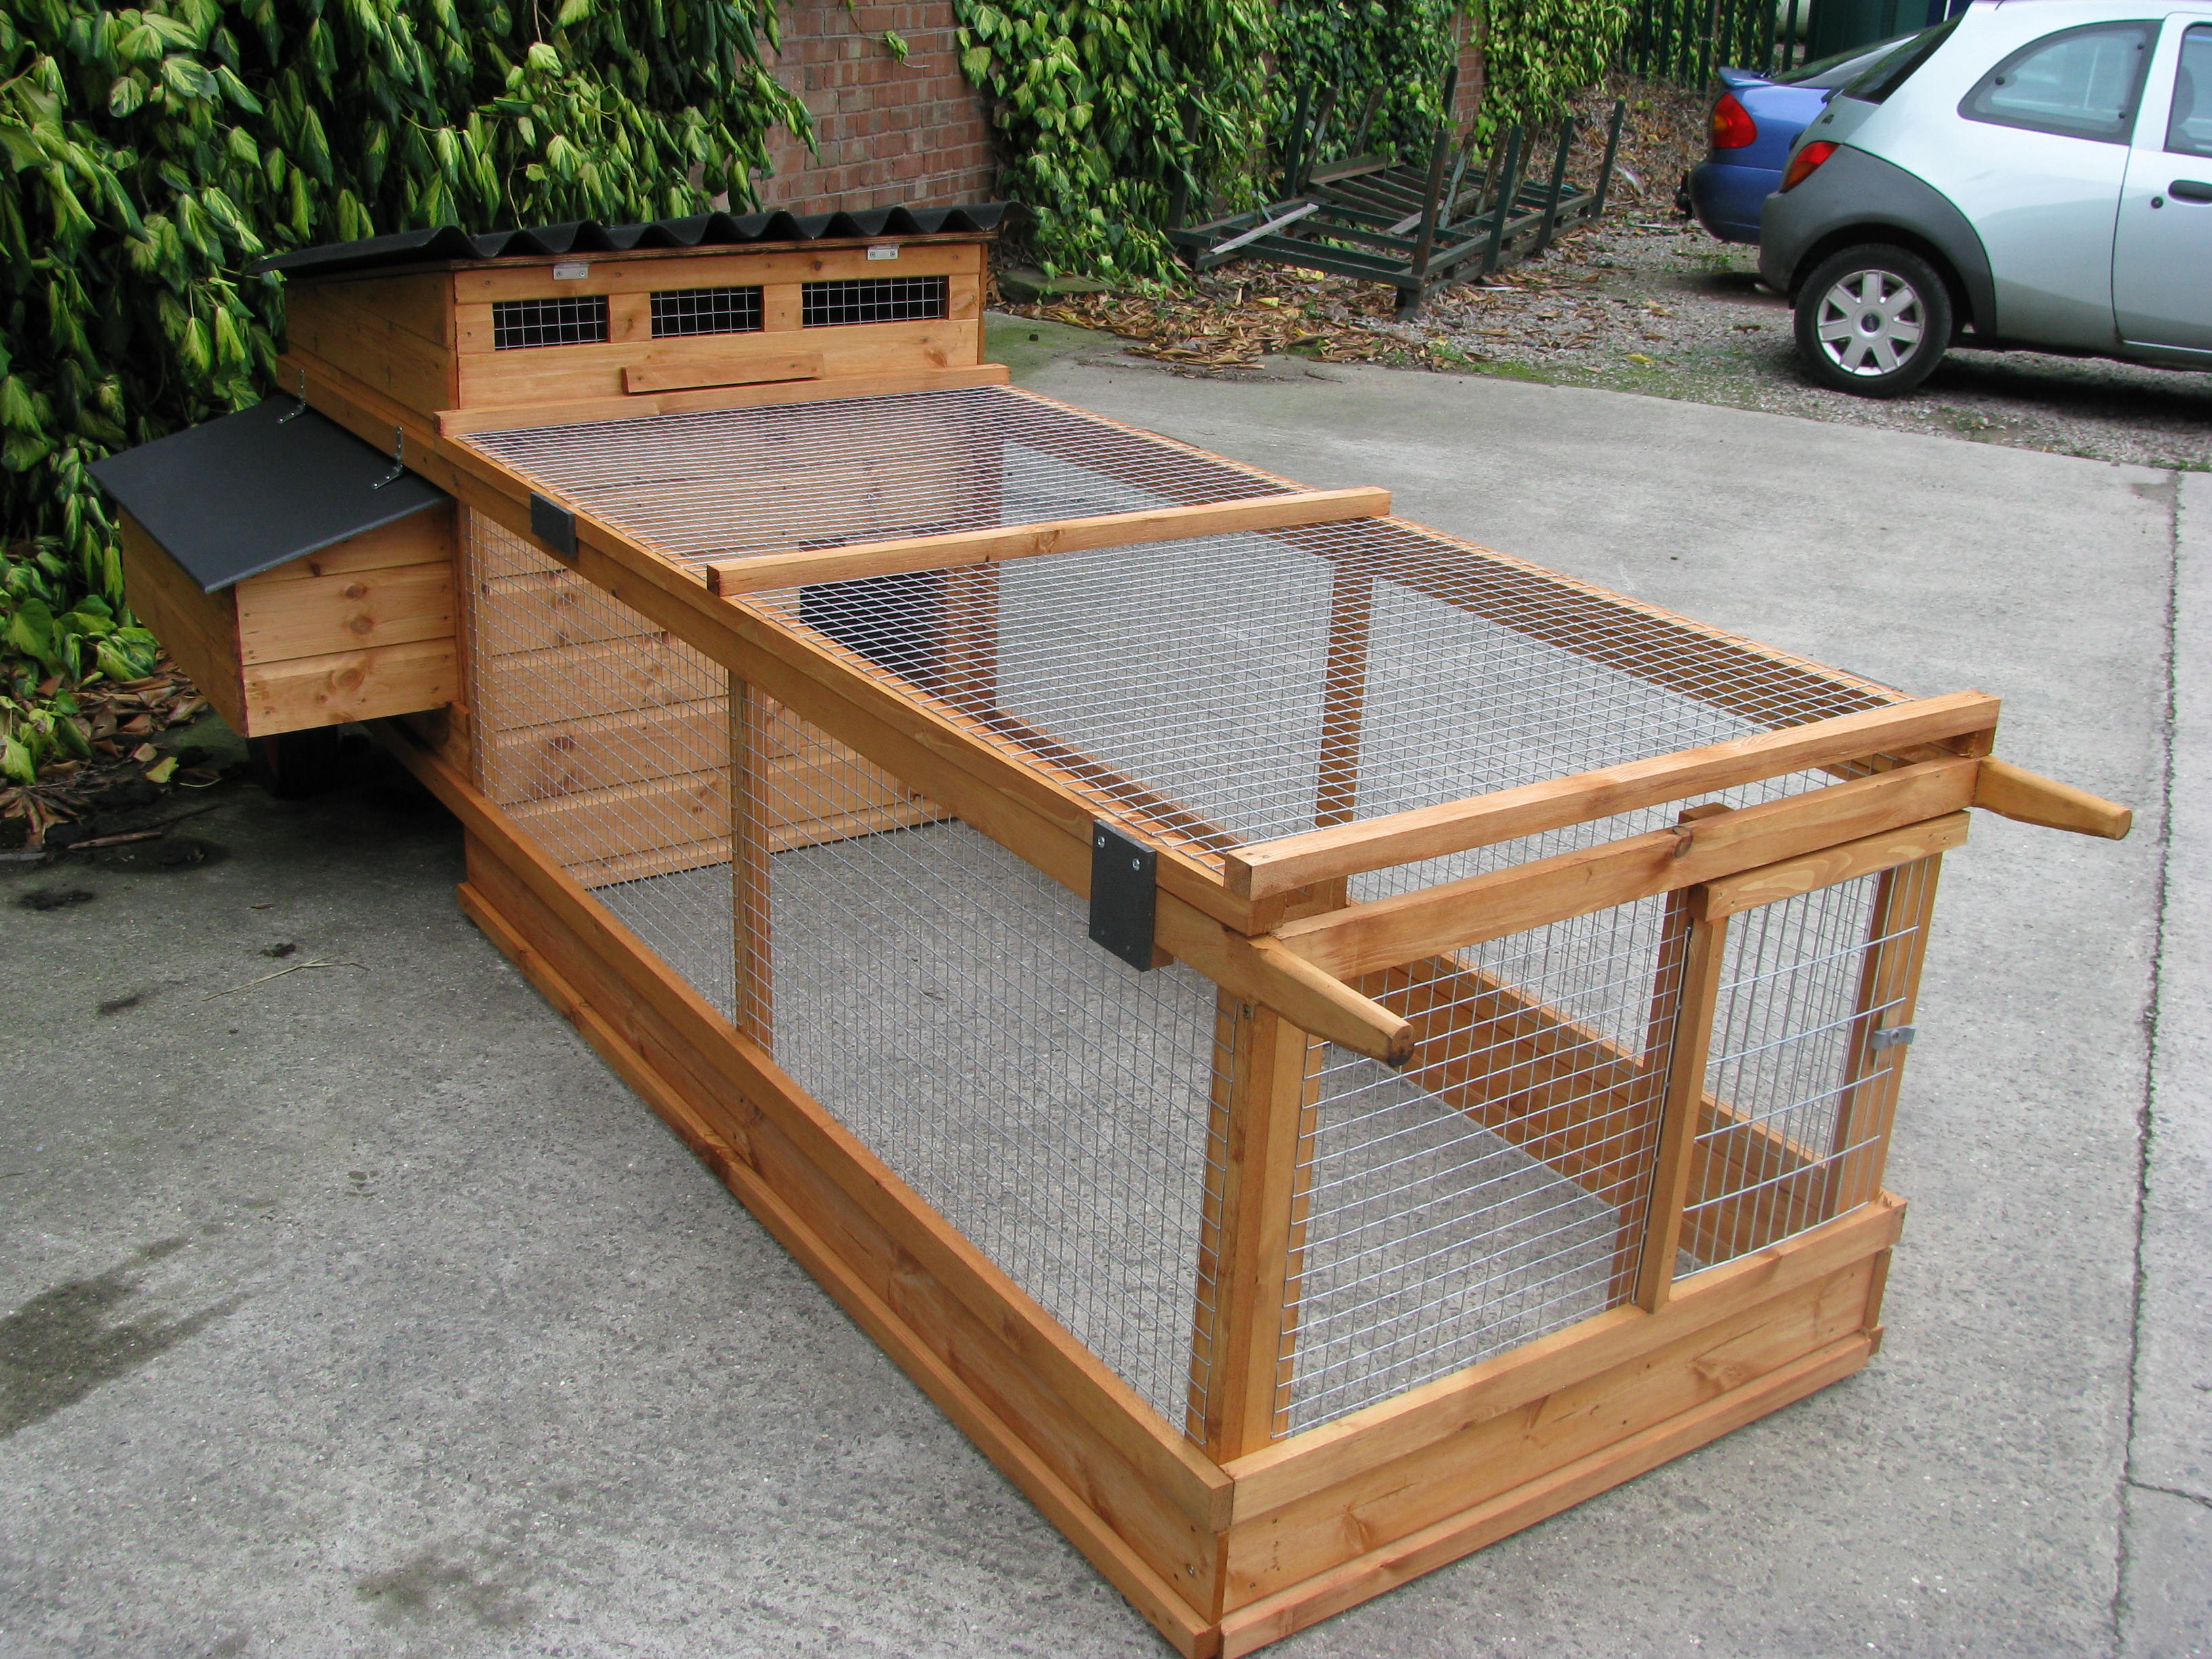 Hen houses new in stock